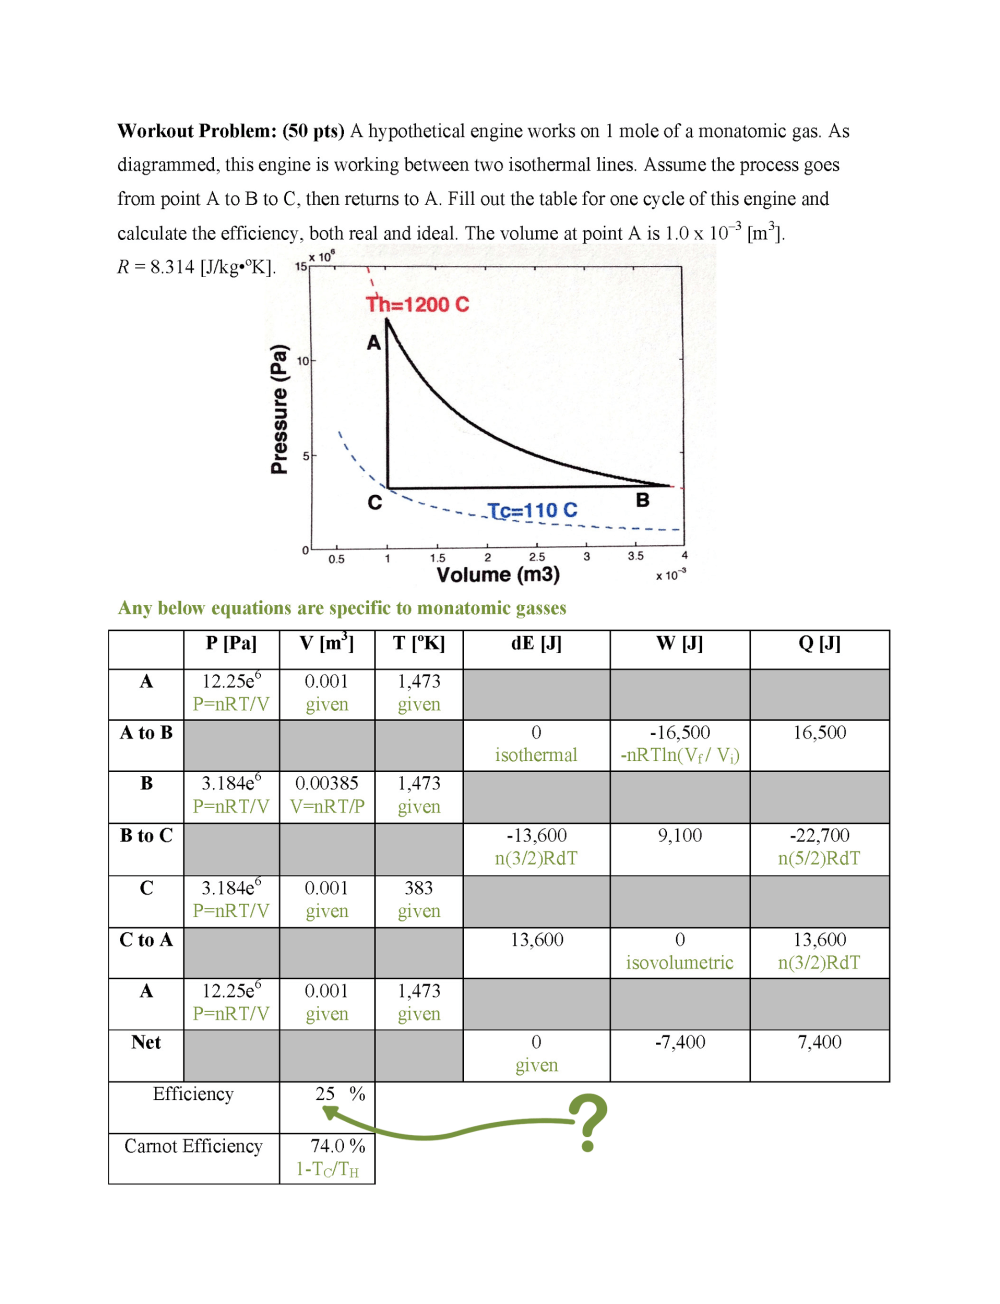 medium resolution of second my instructor said the real efficiency of this engine was 25 but i can t figure out how he got that answer any help would very appreciated